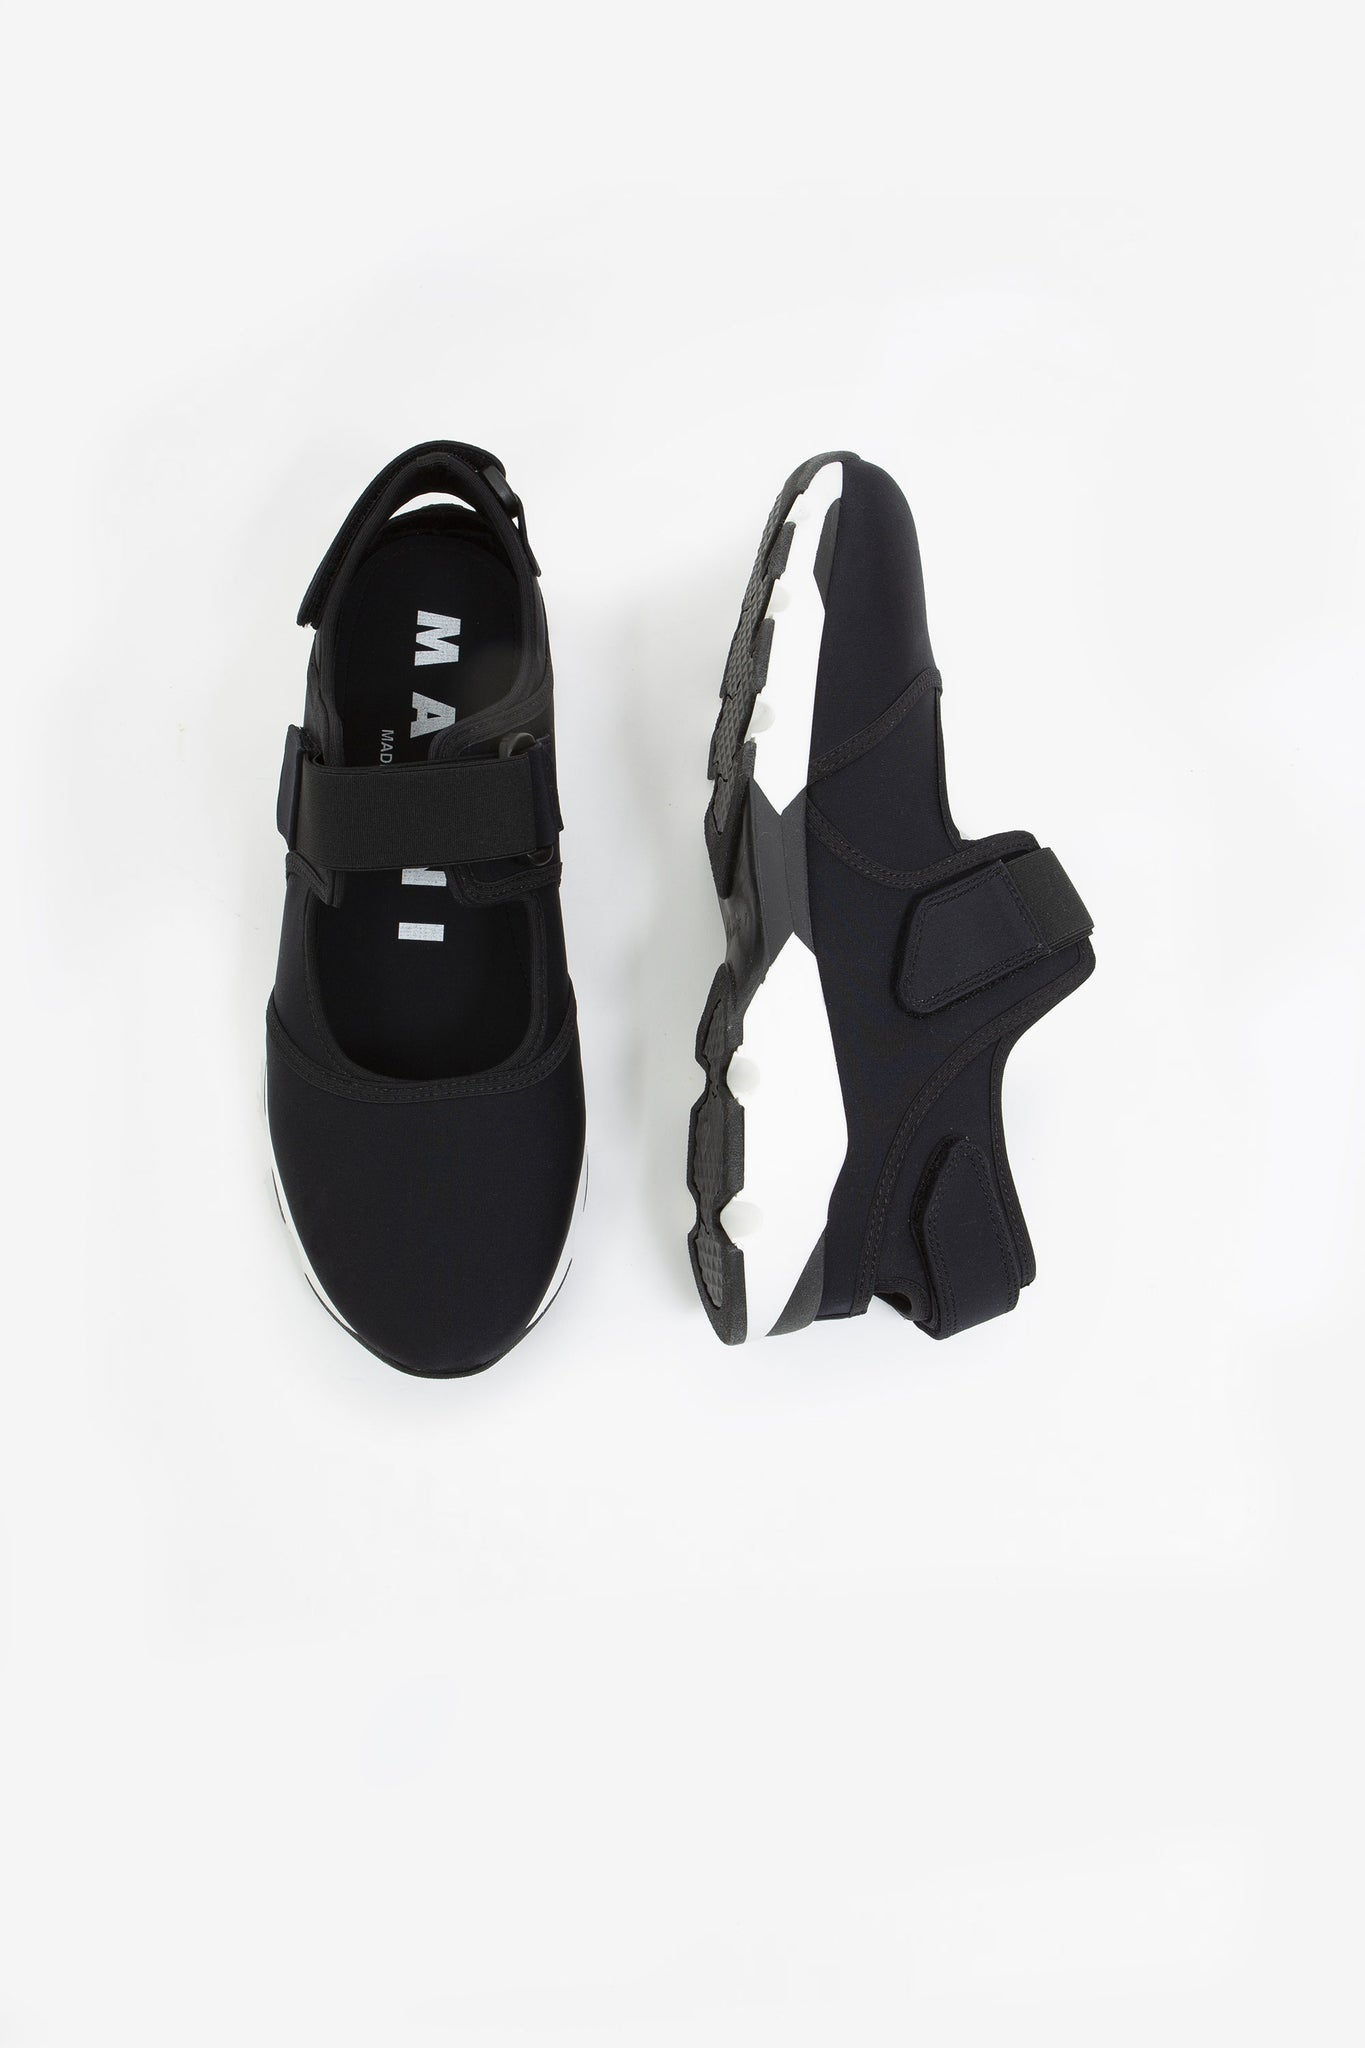 Two-tone sneakers black/white